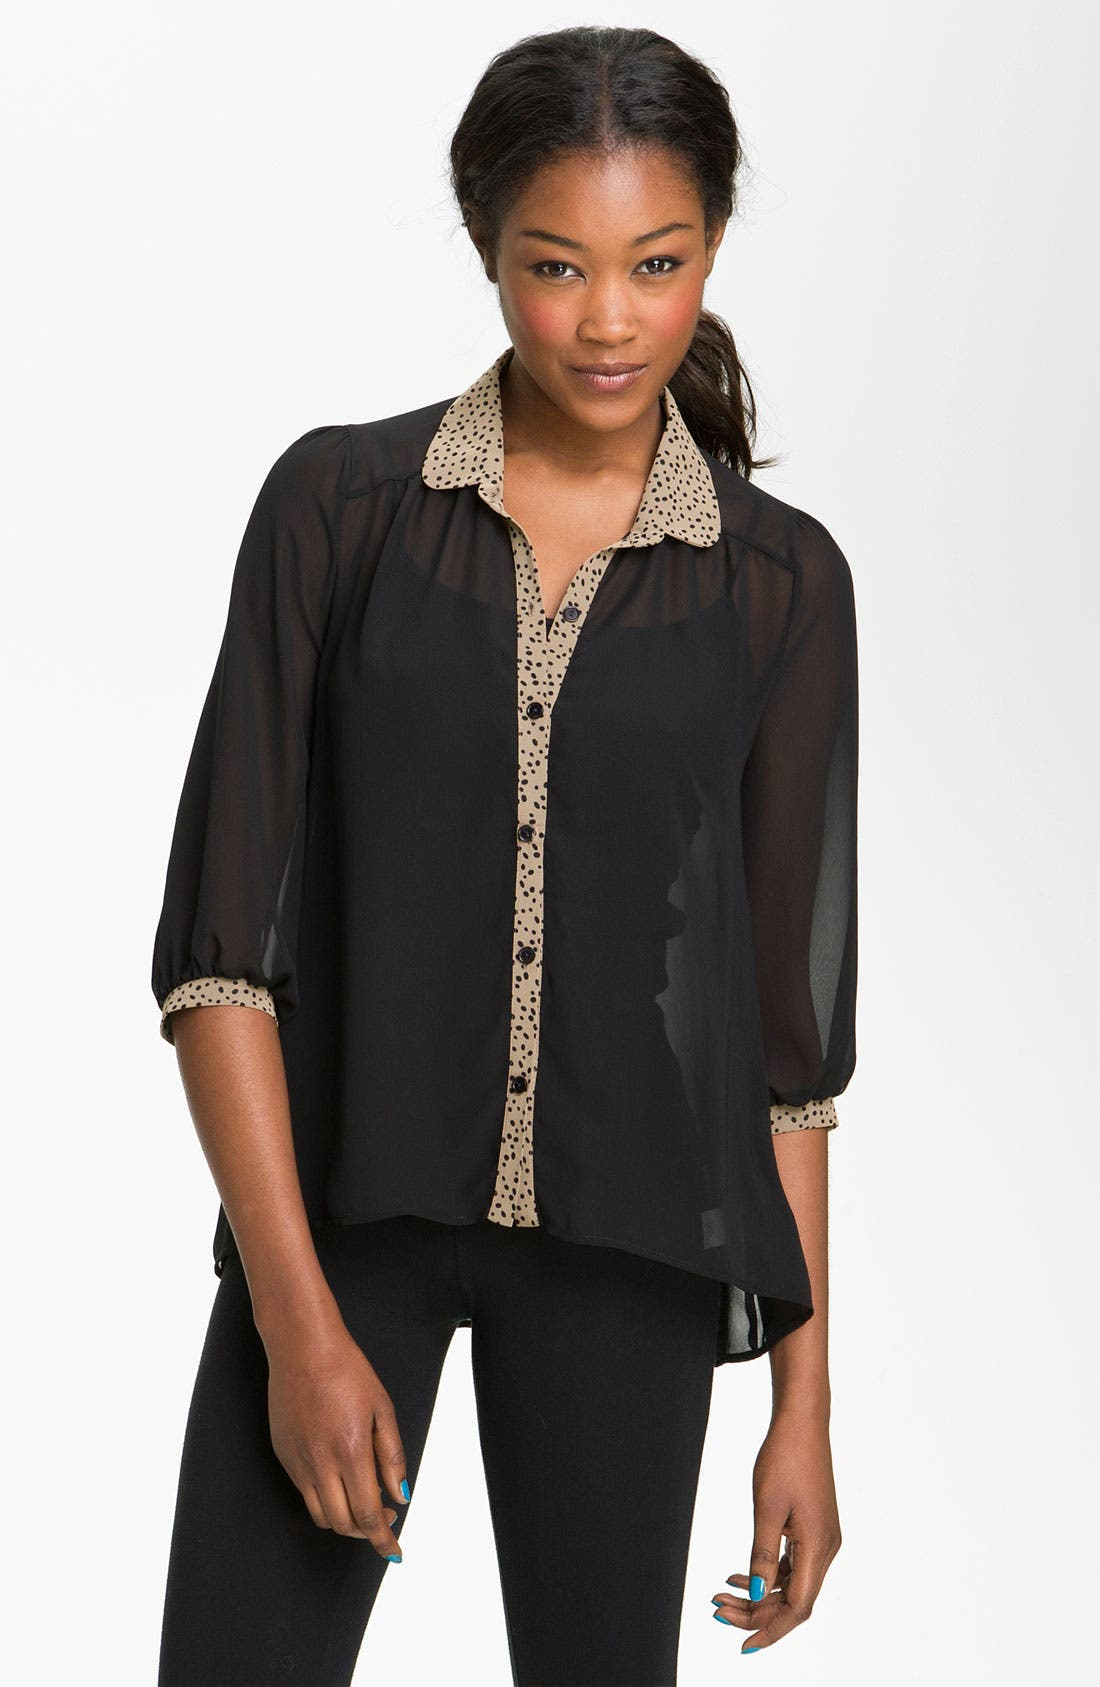 Alternate Image 1 Selected - Lush Contrast Trim Chiffon Shirt (Juniors)